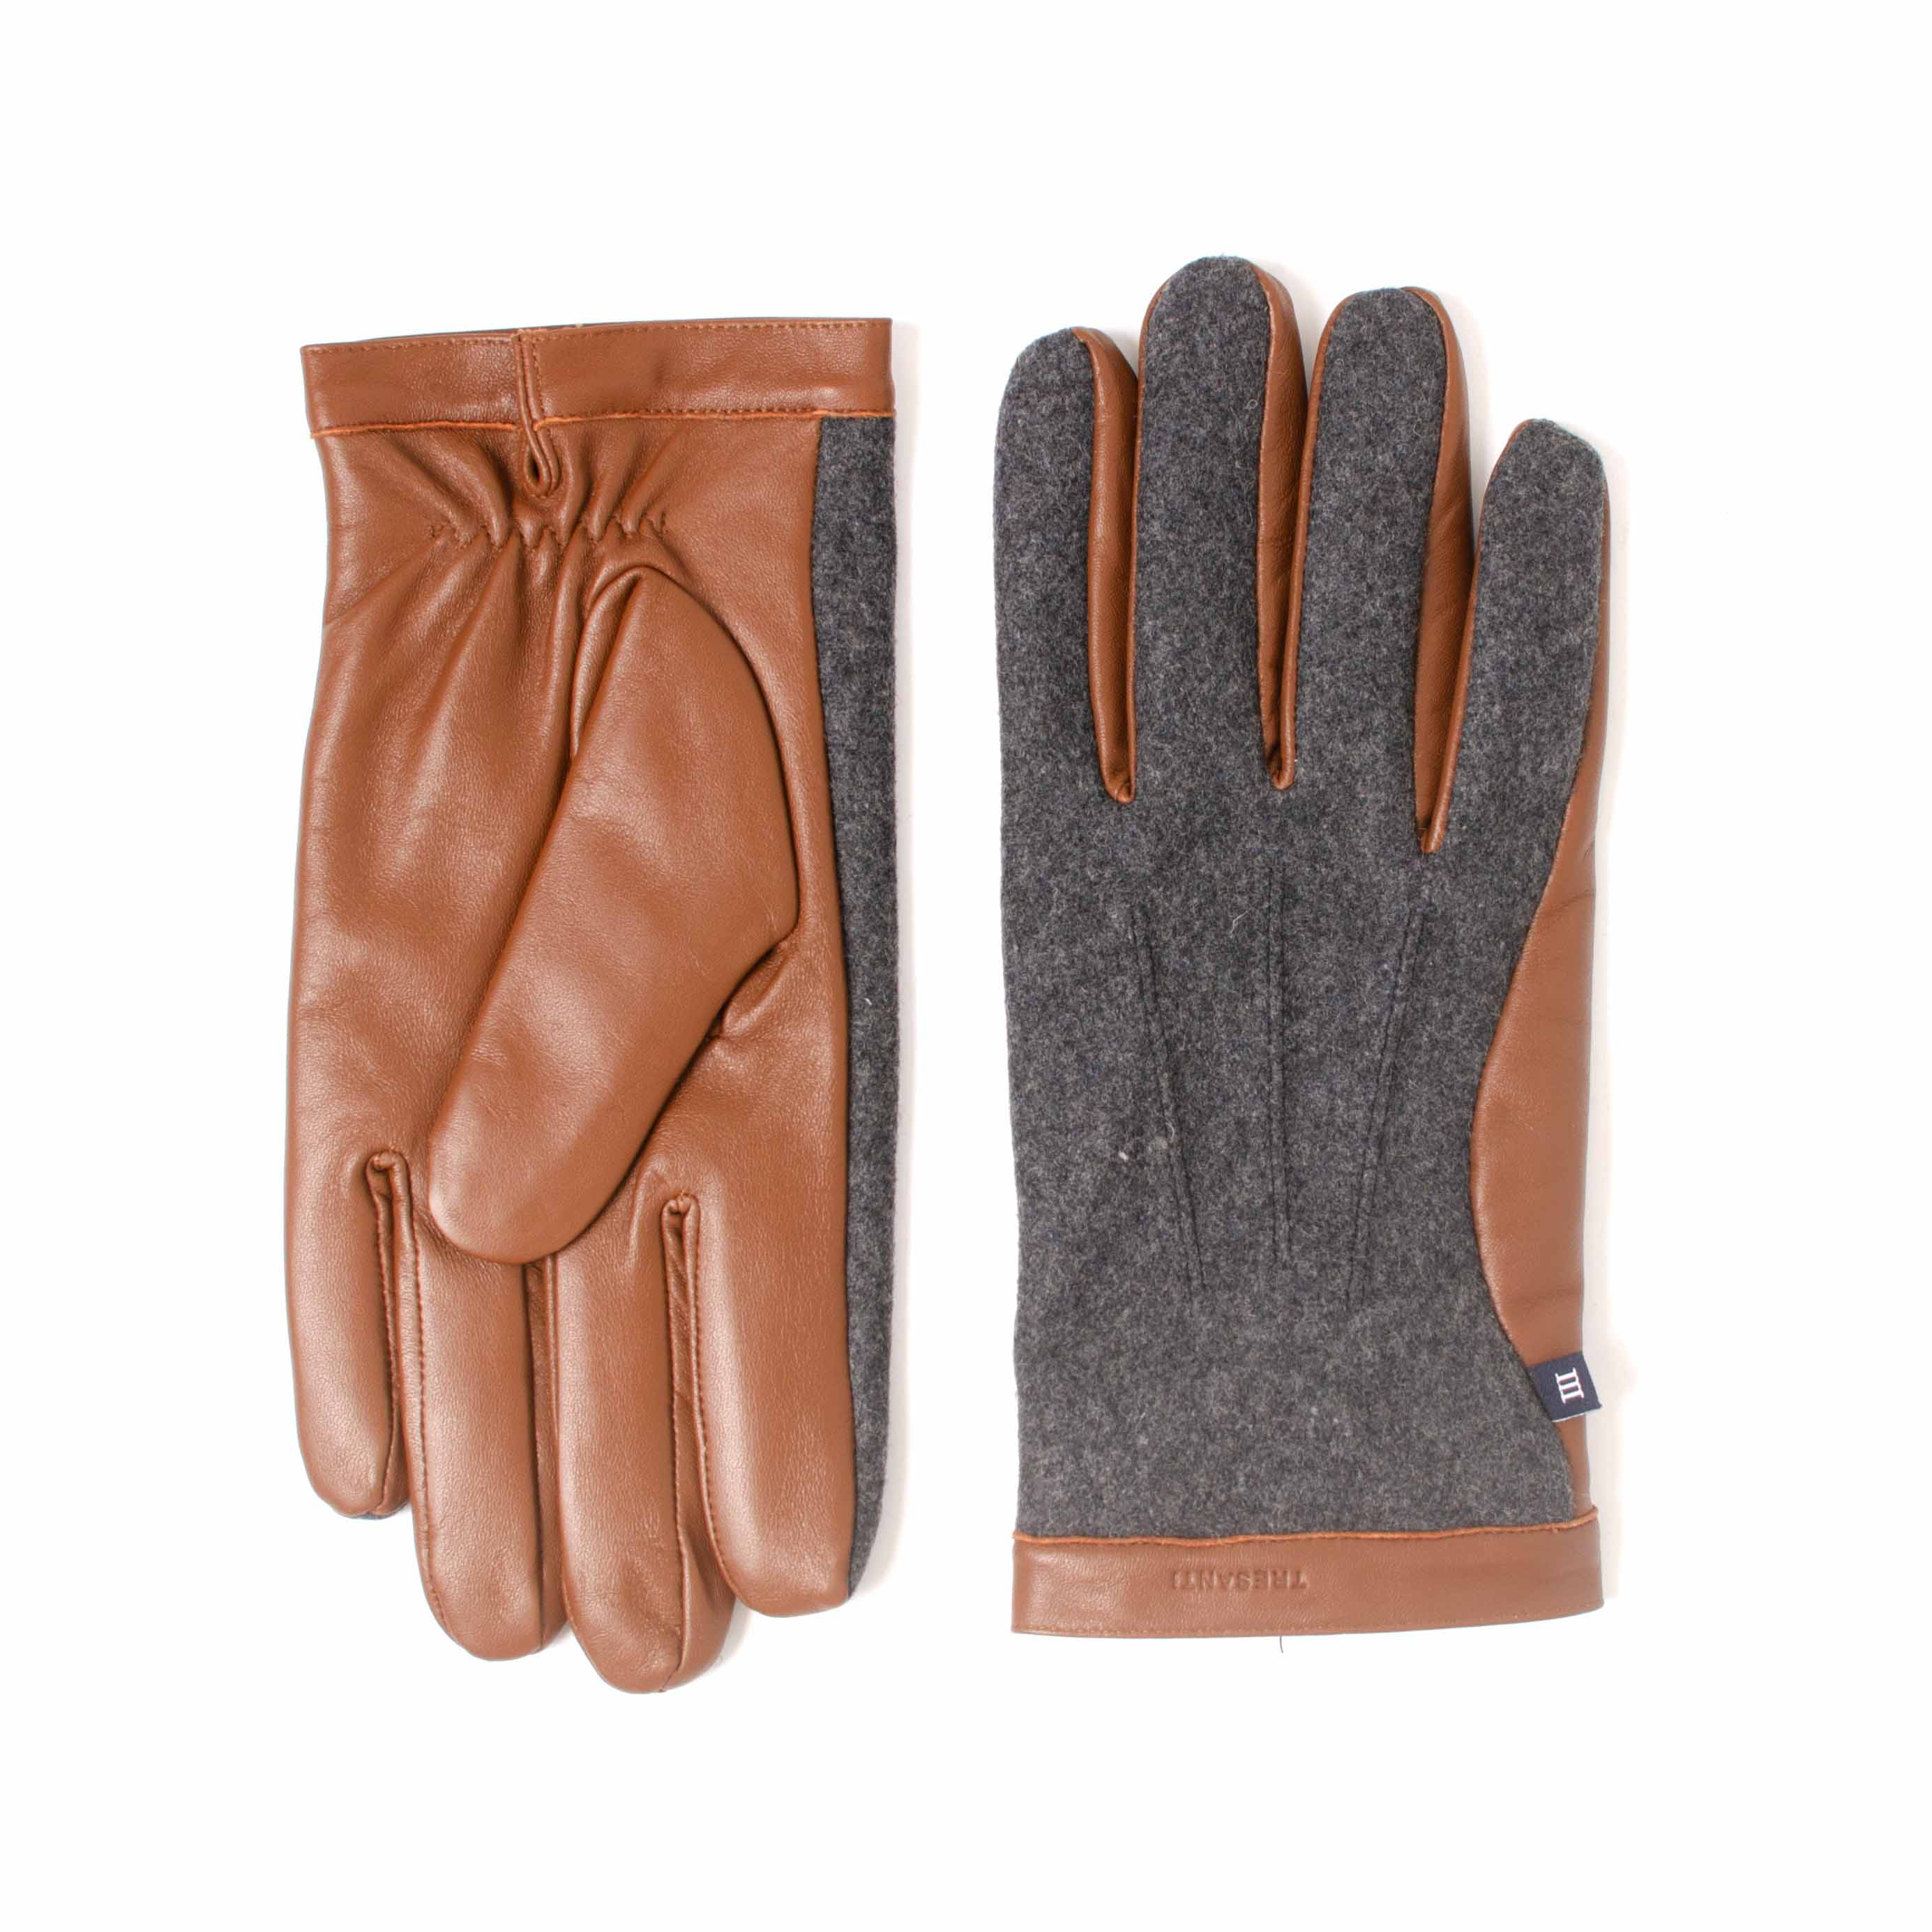 ELROY | Cognac leather en fabric gloves combined with grey